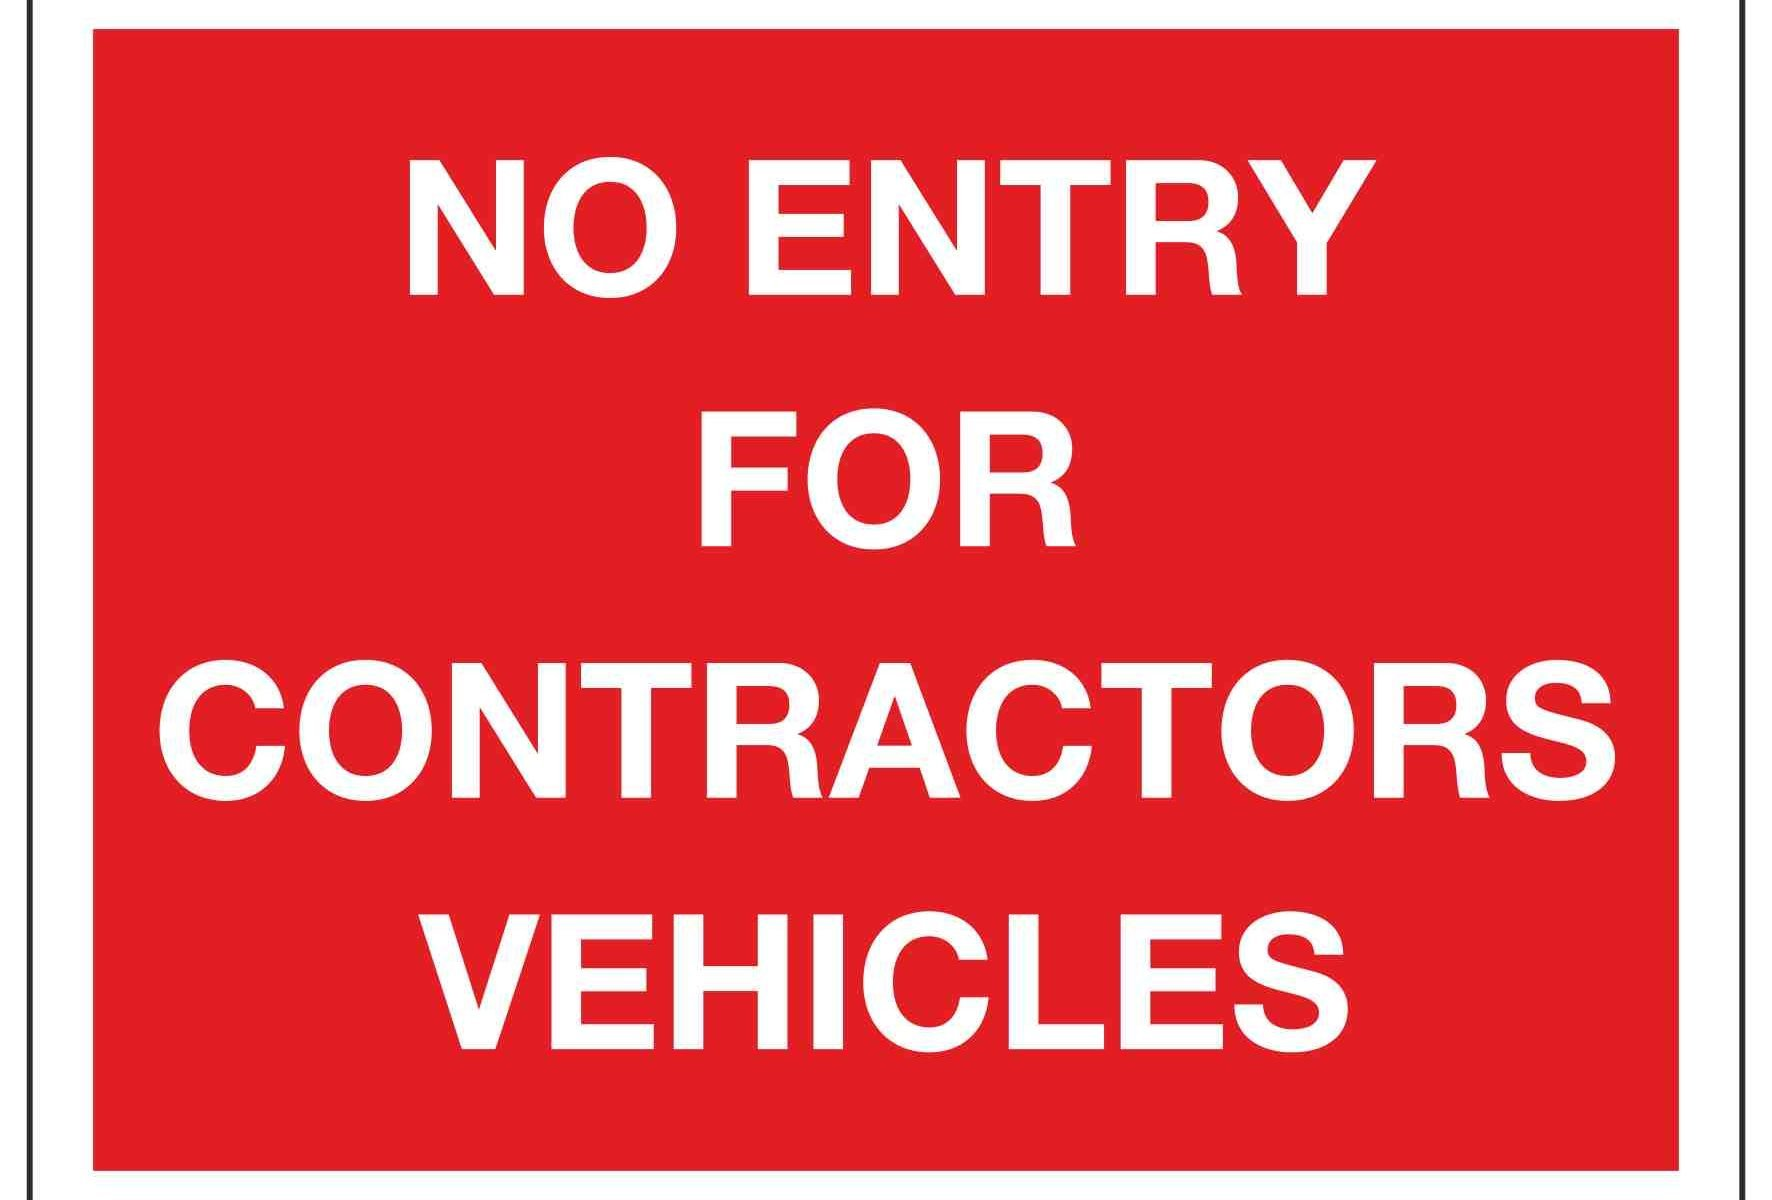 NO ENTRY FOR CONTRACTORS VEHICLES